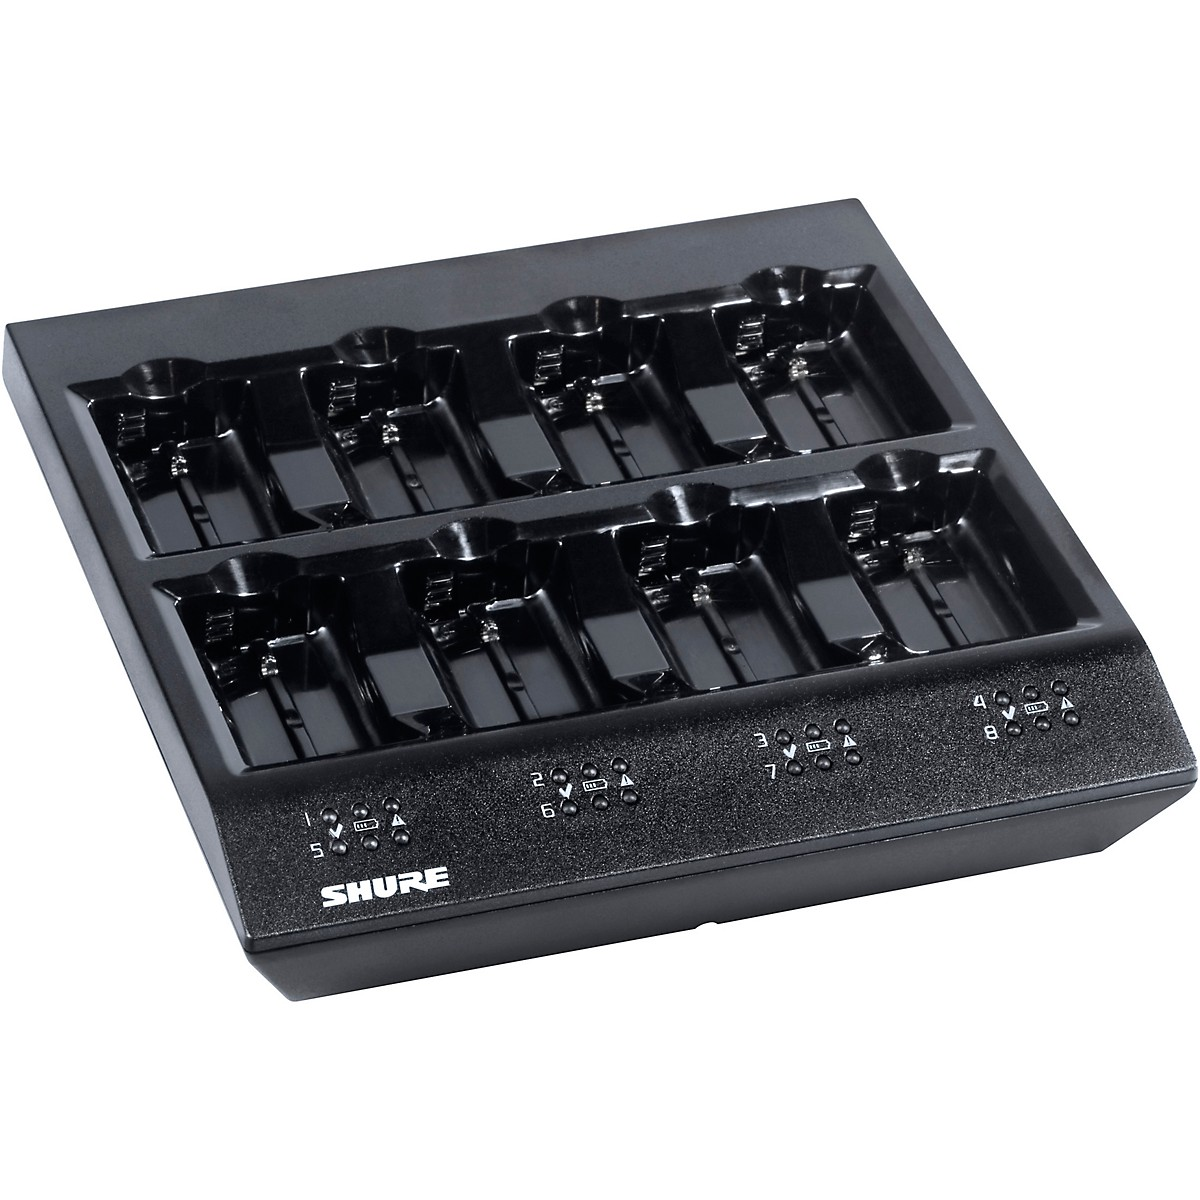 Shure 8 Bay Battery Charger